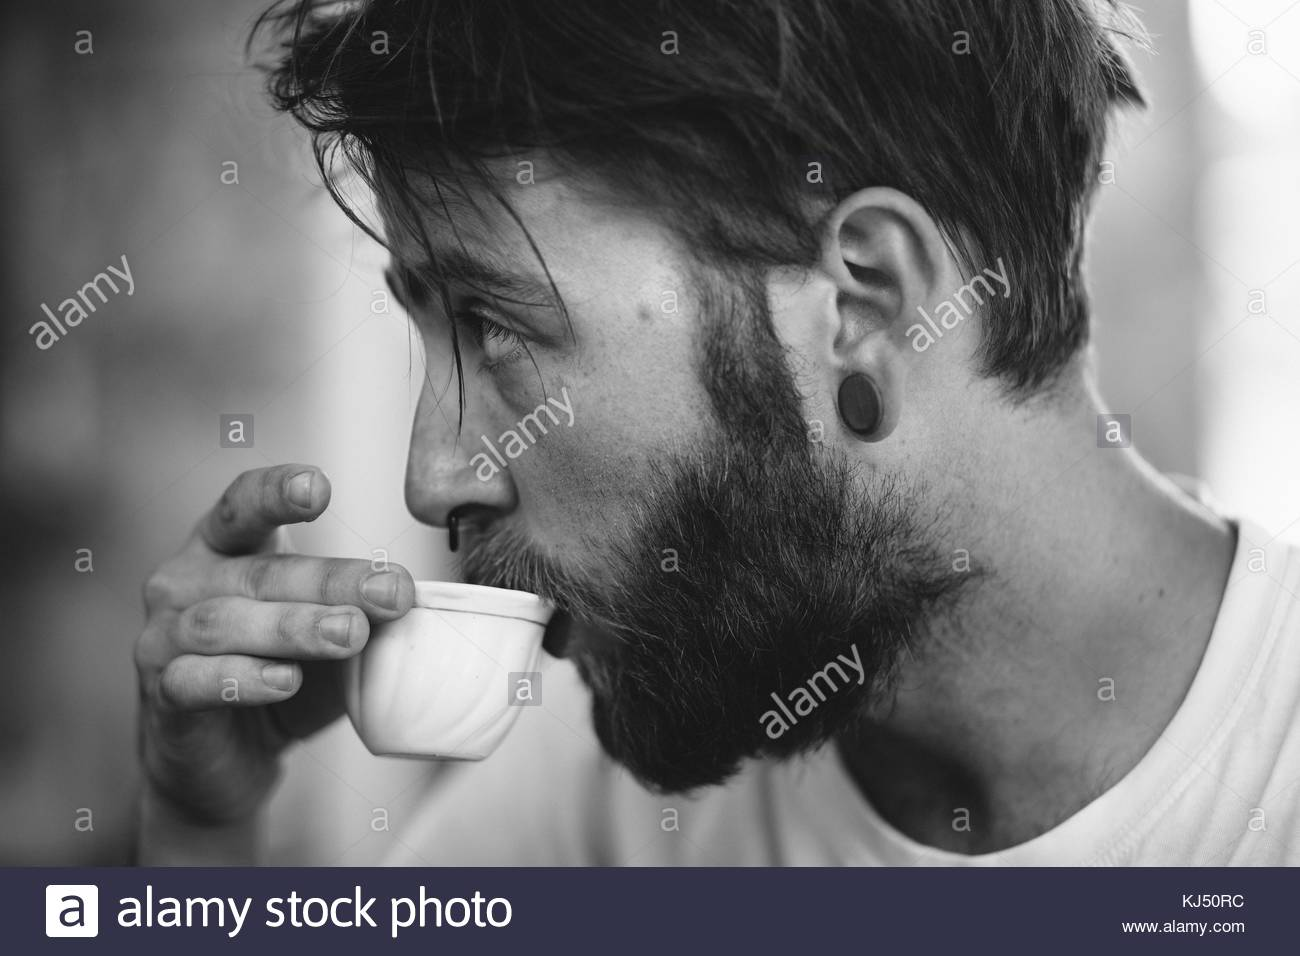 Bearded man with septum piercing drikning coffee - Stock Image